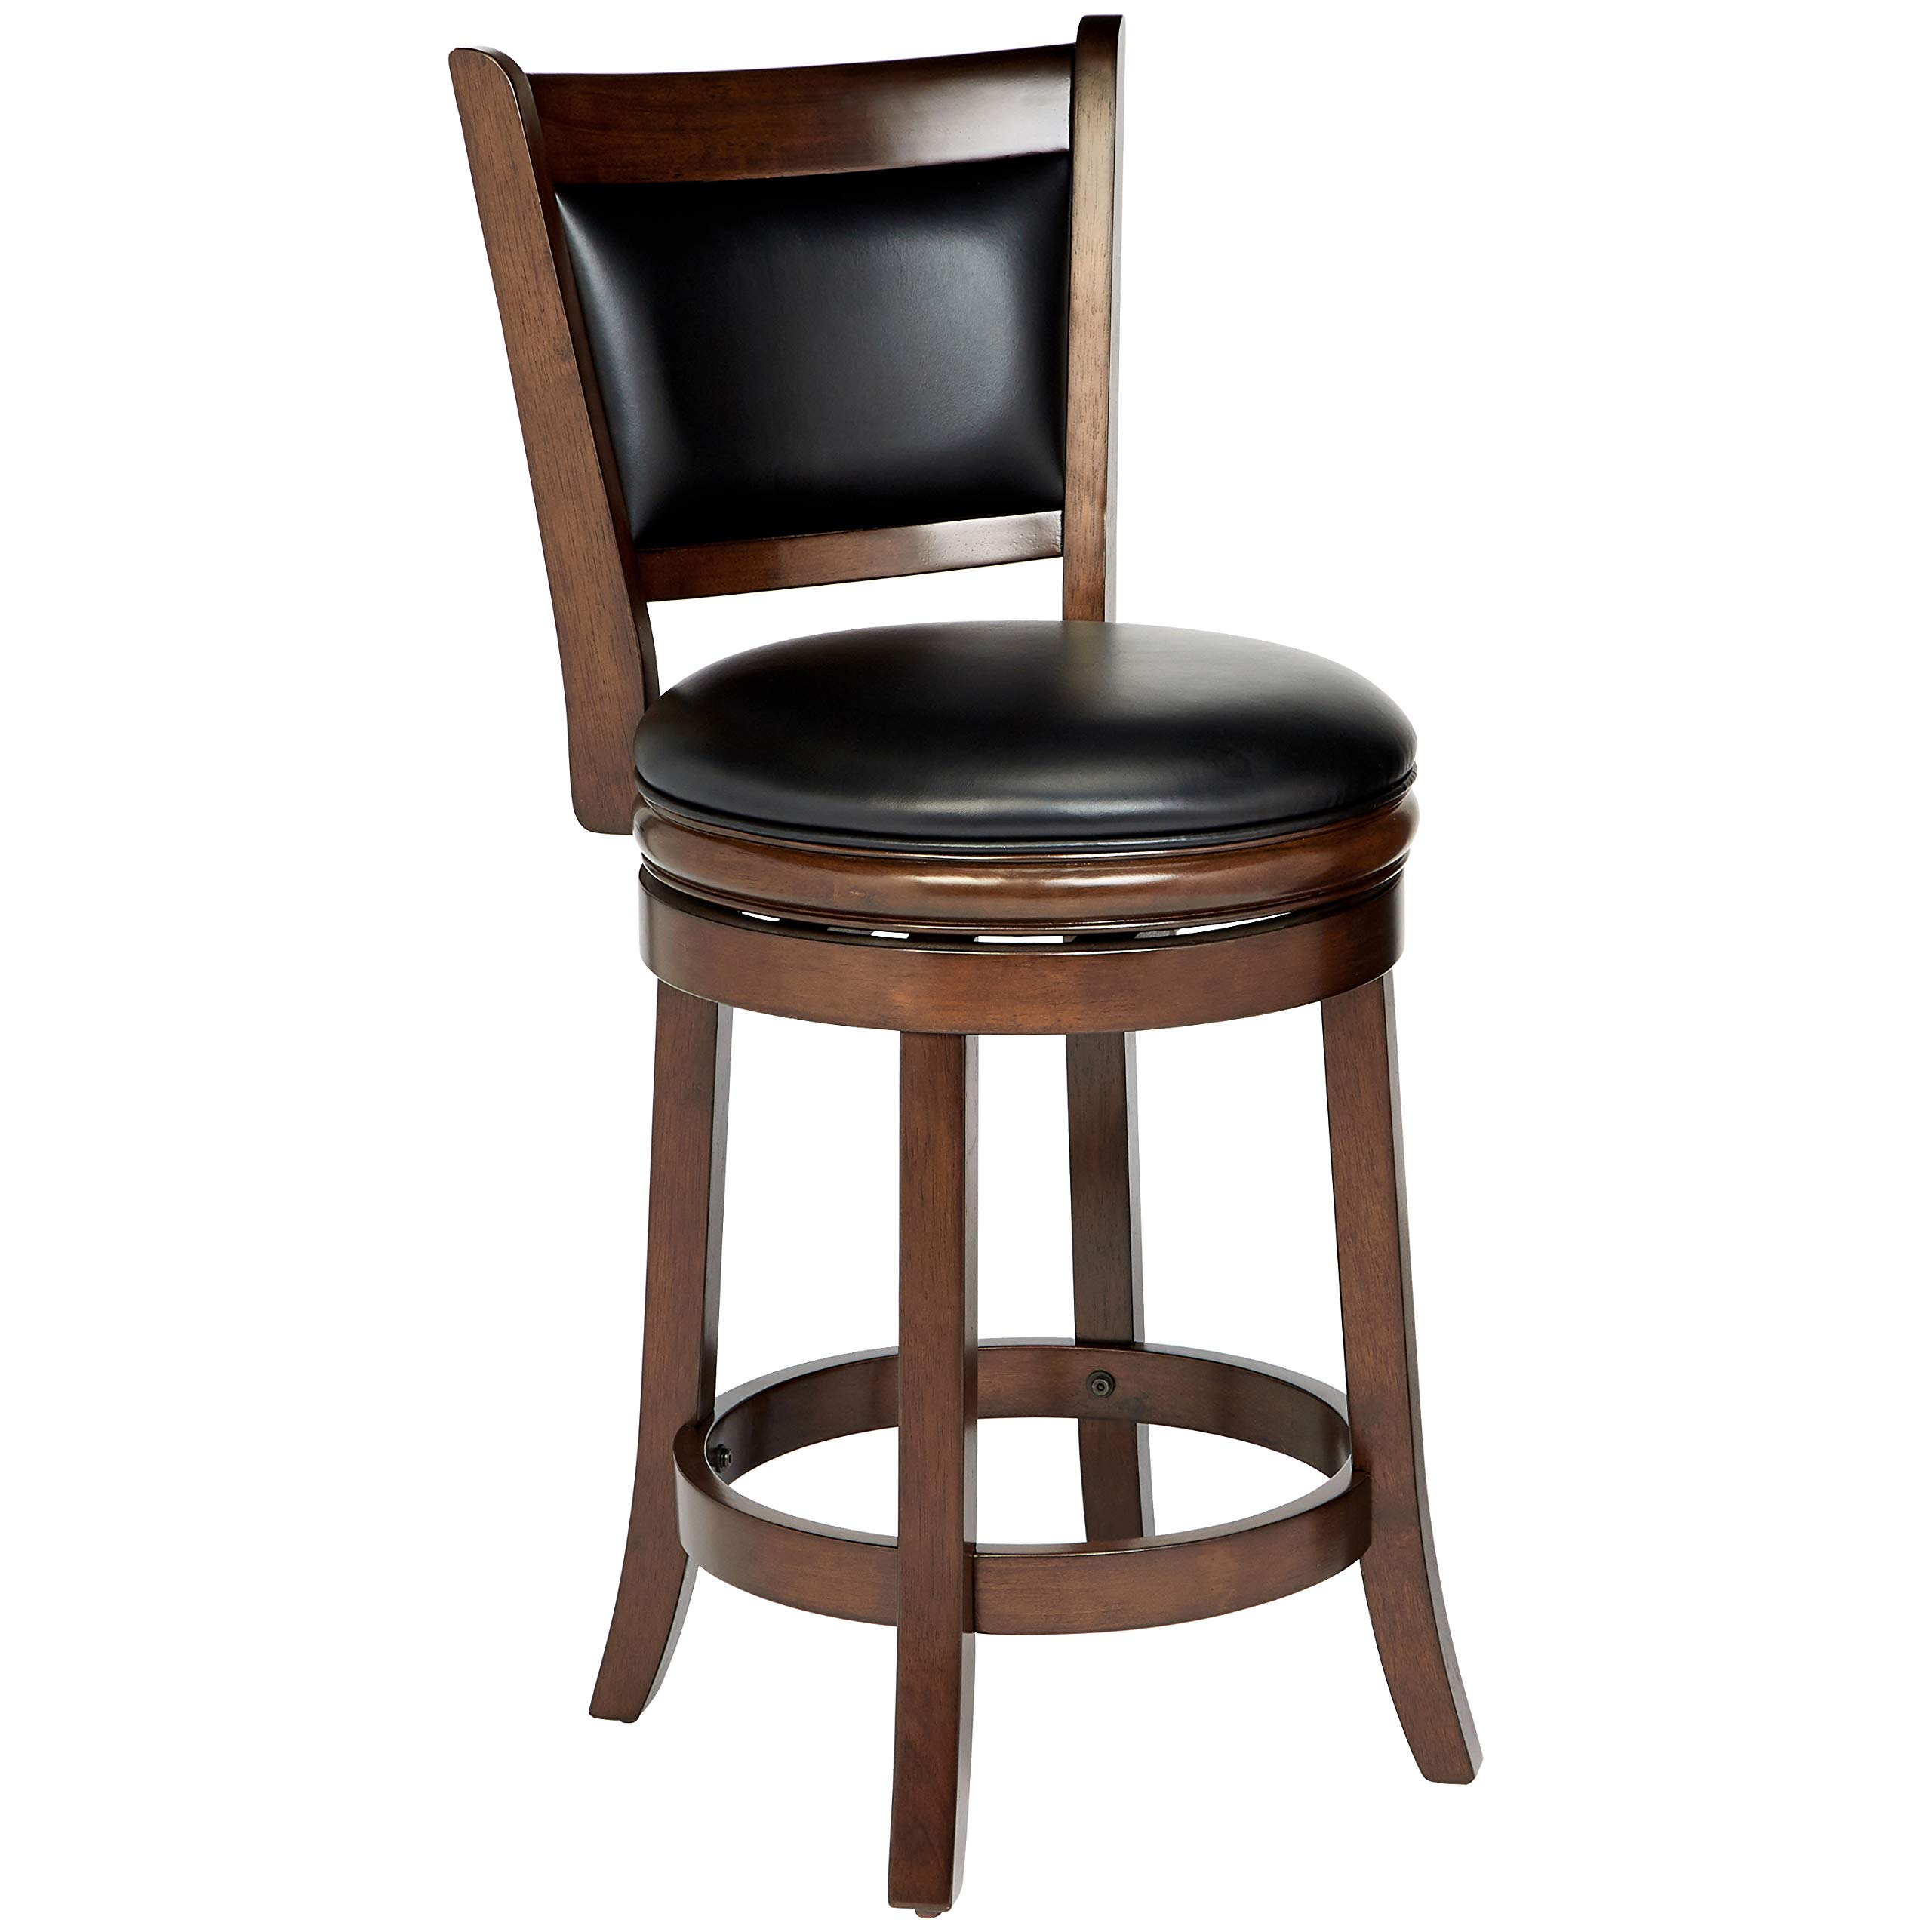 Ball & Cast HSA-1102B-2 Stool, 24'', Cappuccino by Ball & Cast (Image #3)